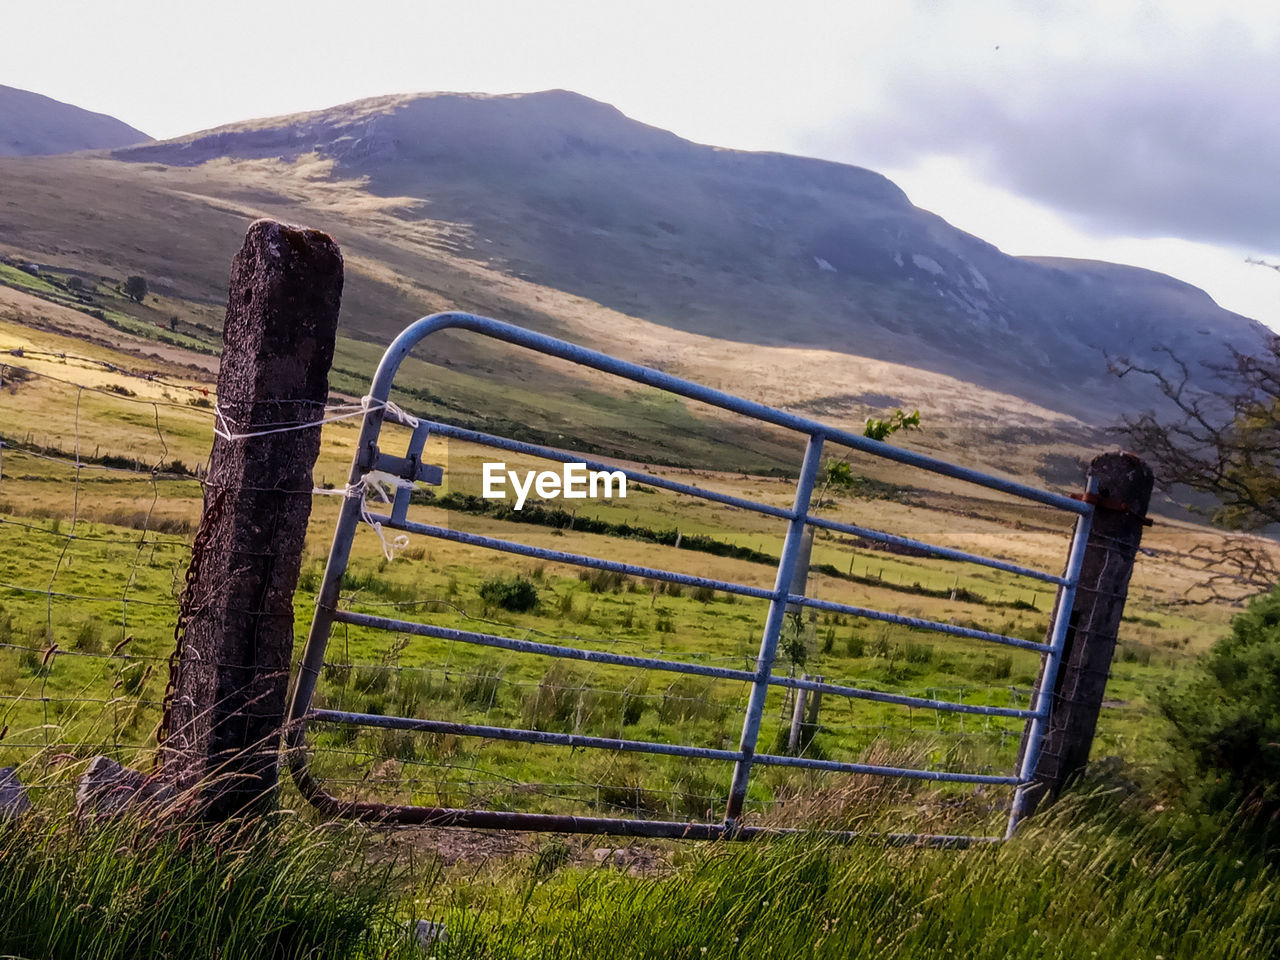 mountain, landscape, scenics - nature, fence, grass, barrier, tranquil scene, boundary, non-urban scene, tranquility, environment, beauty in nature, nature, sky, day, no people, land, field, mountain range, plant, outdoors